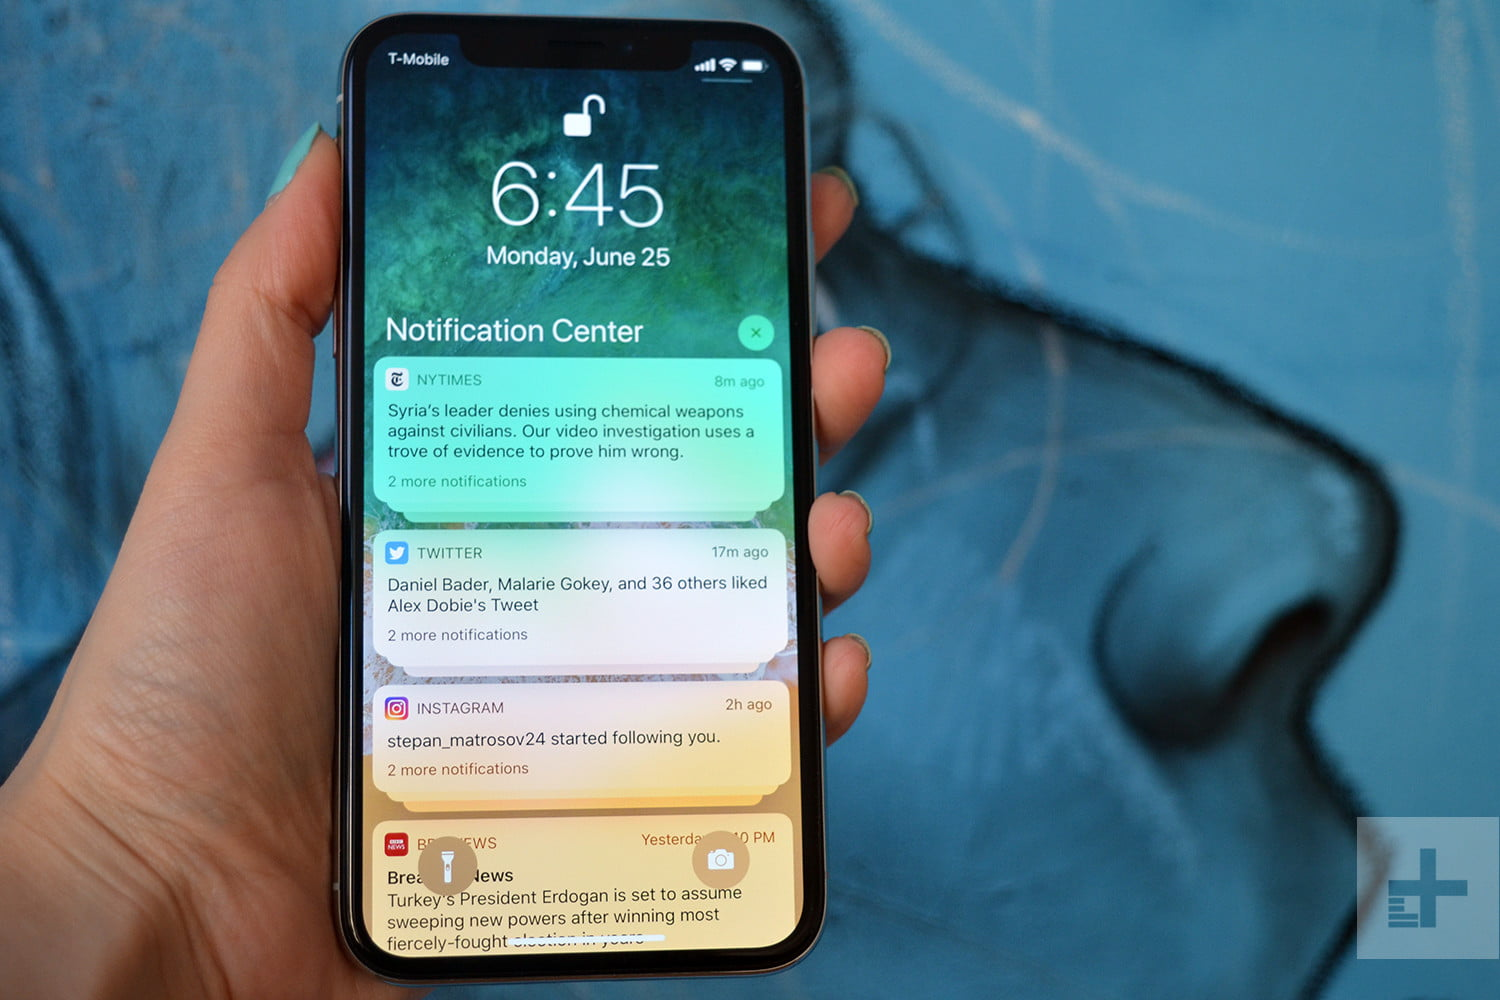 iPhone Notifications Are No Longer a Nuisance with iOS 12 | Digital